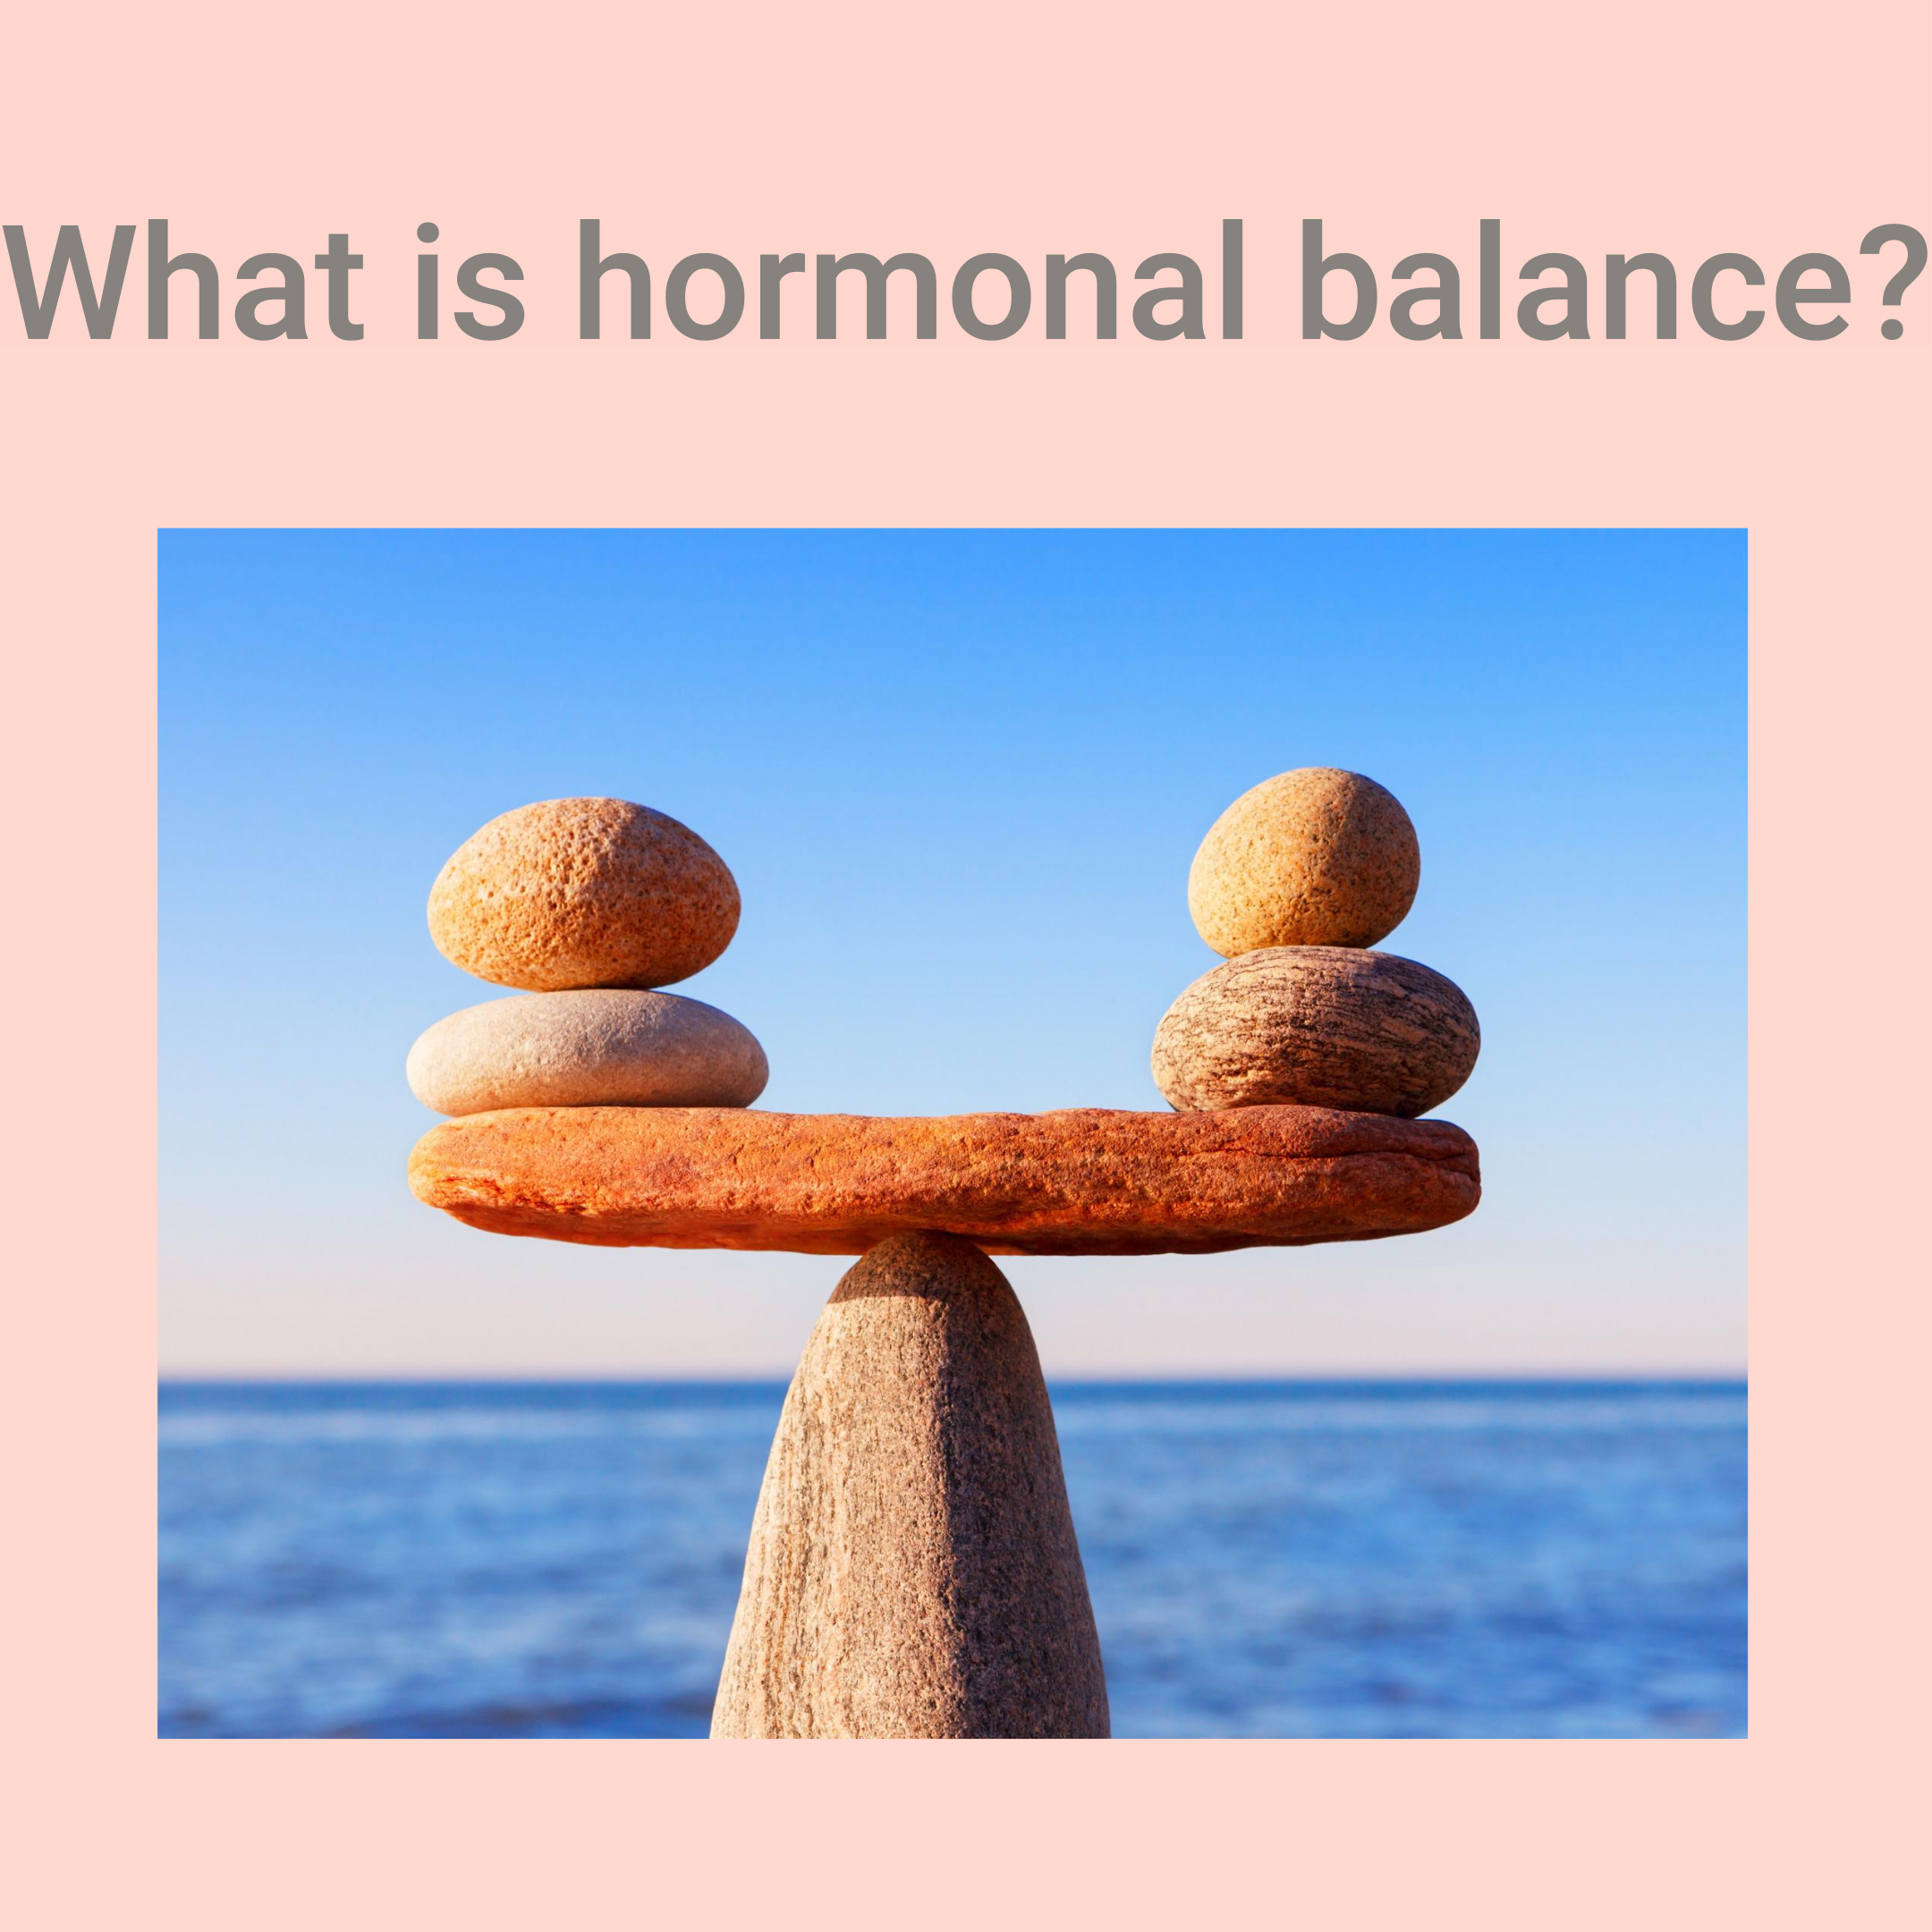 What is hormonal balance?